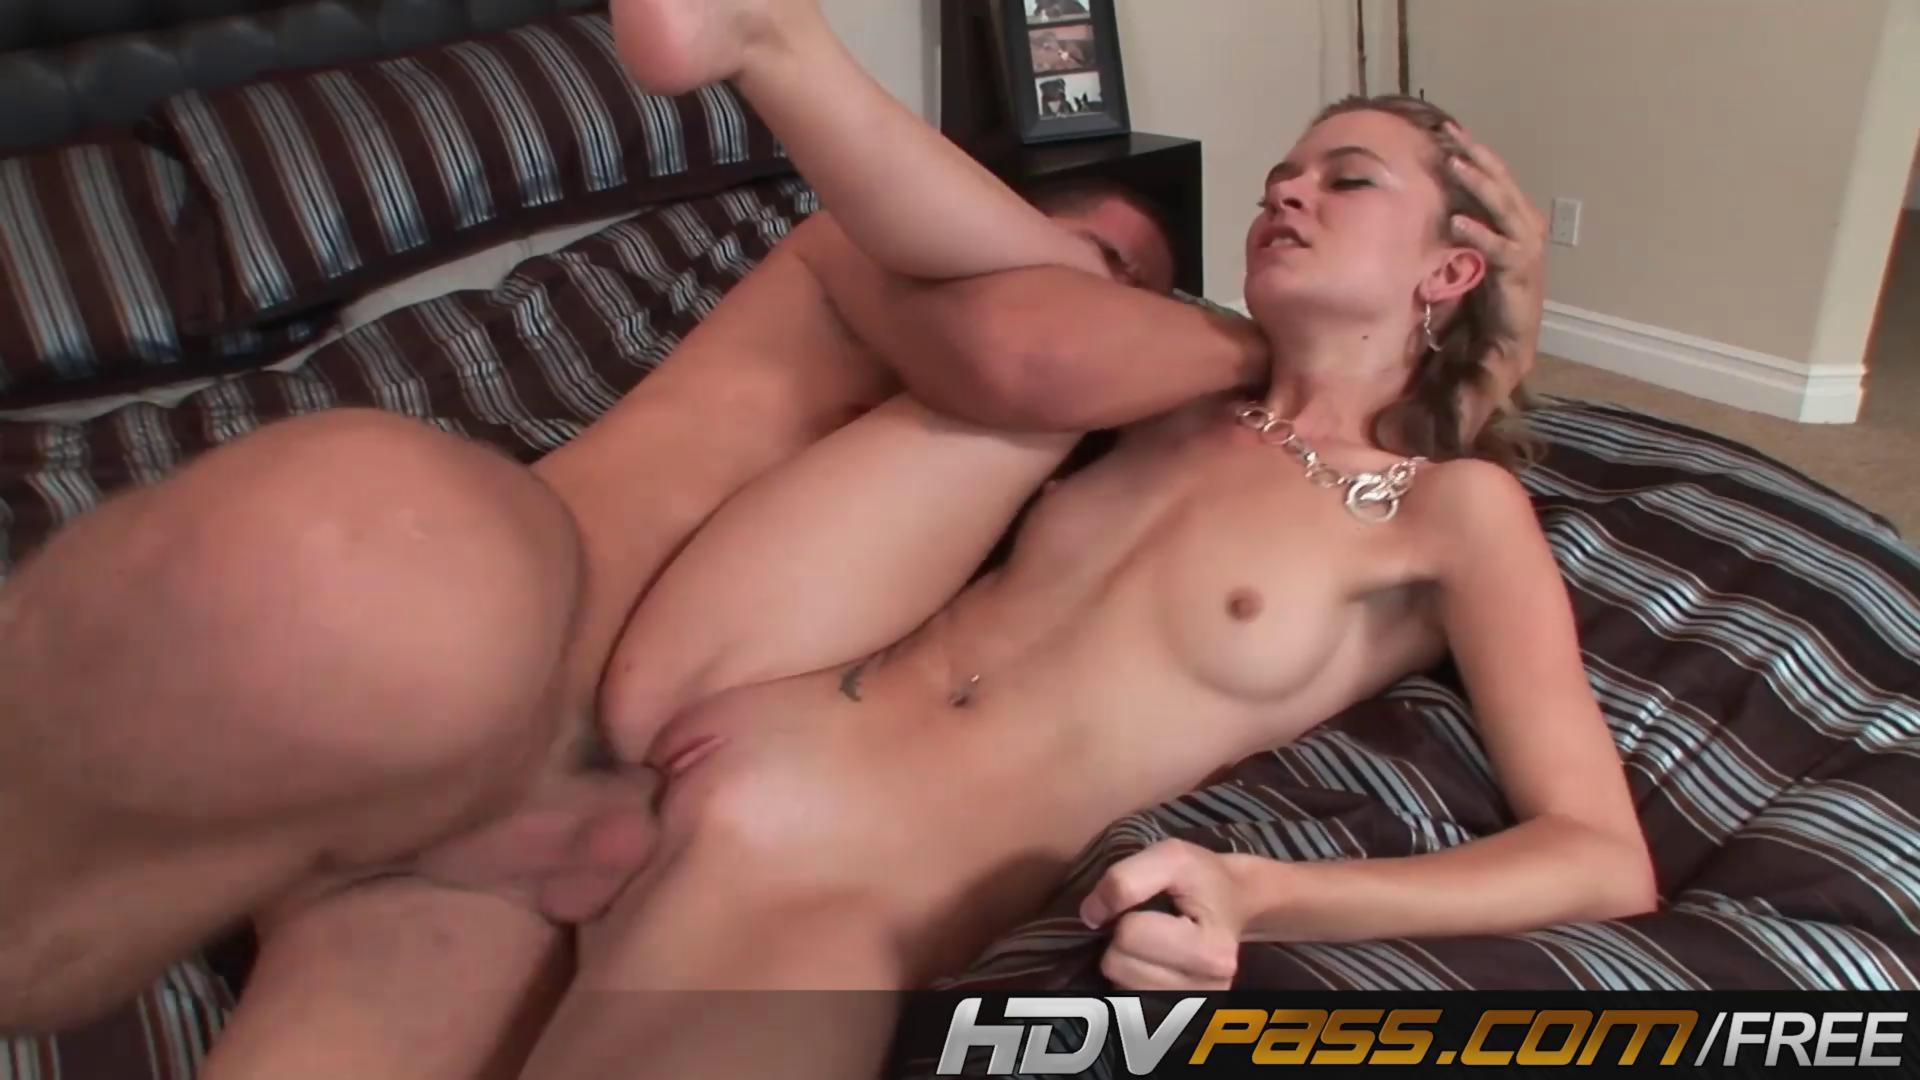 that ass and her pussy sure is fun to fuck on GotPorn